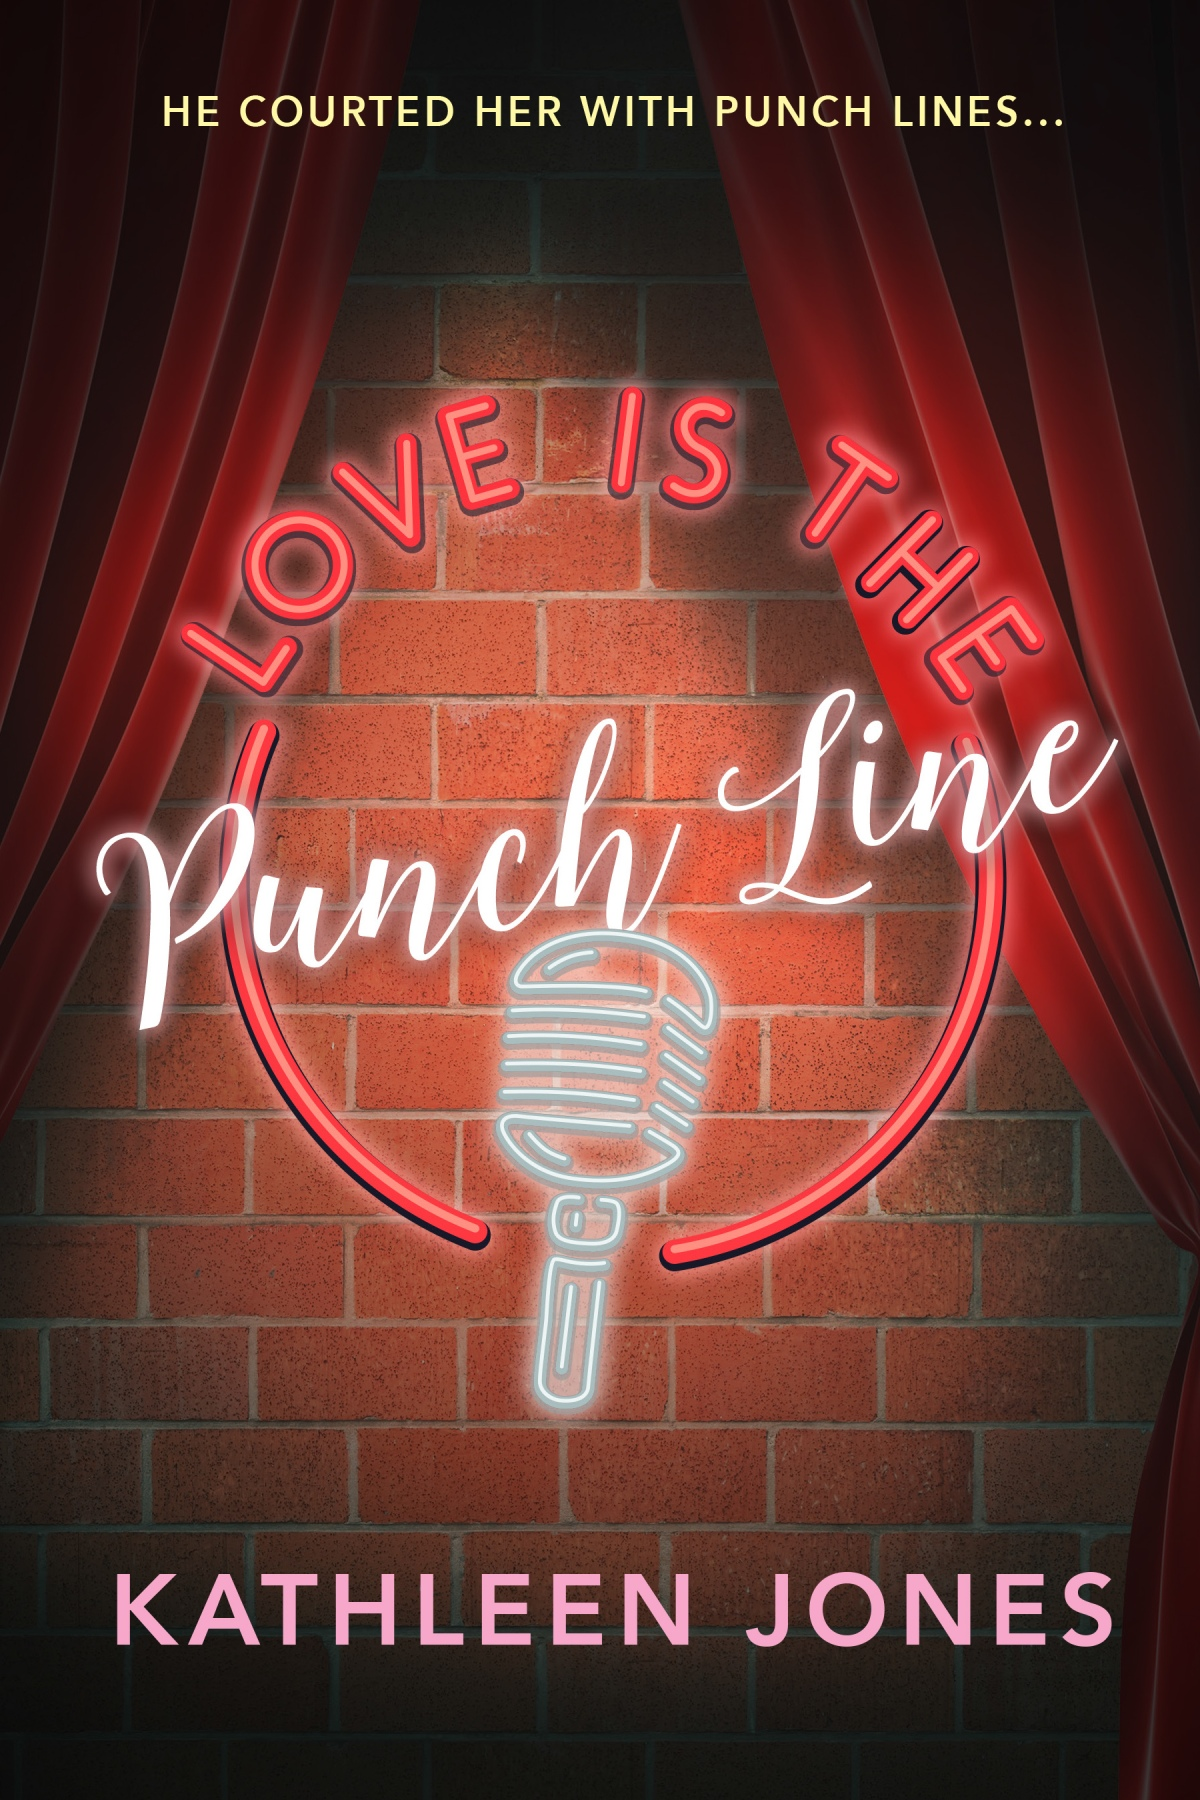 Glowing Review for Punch Line!